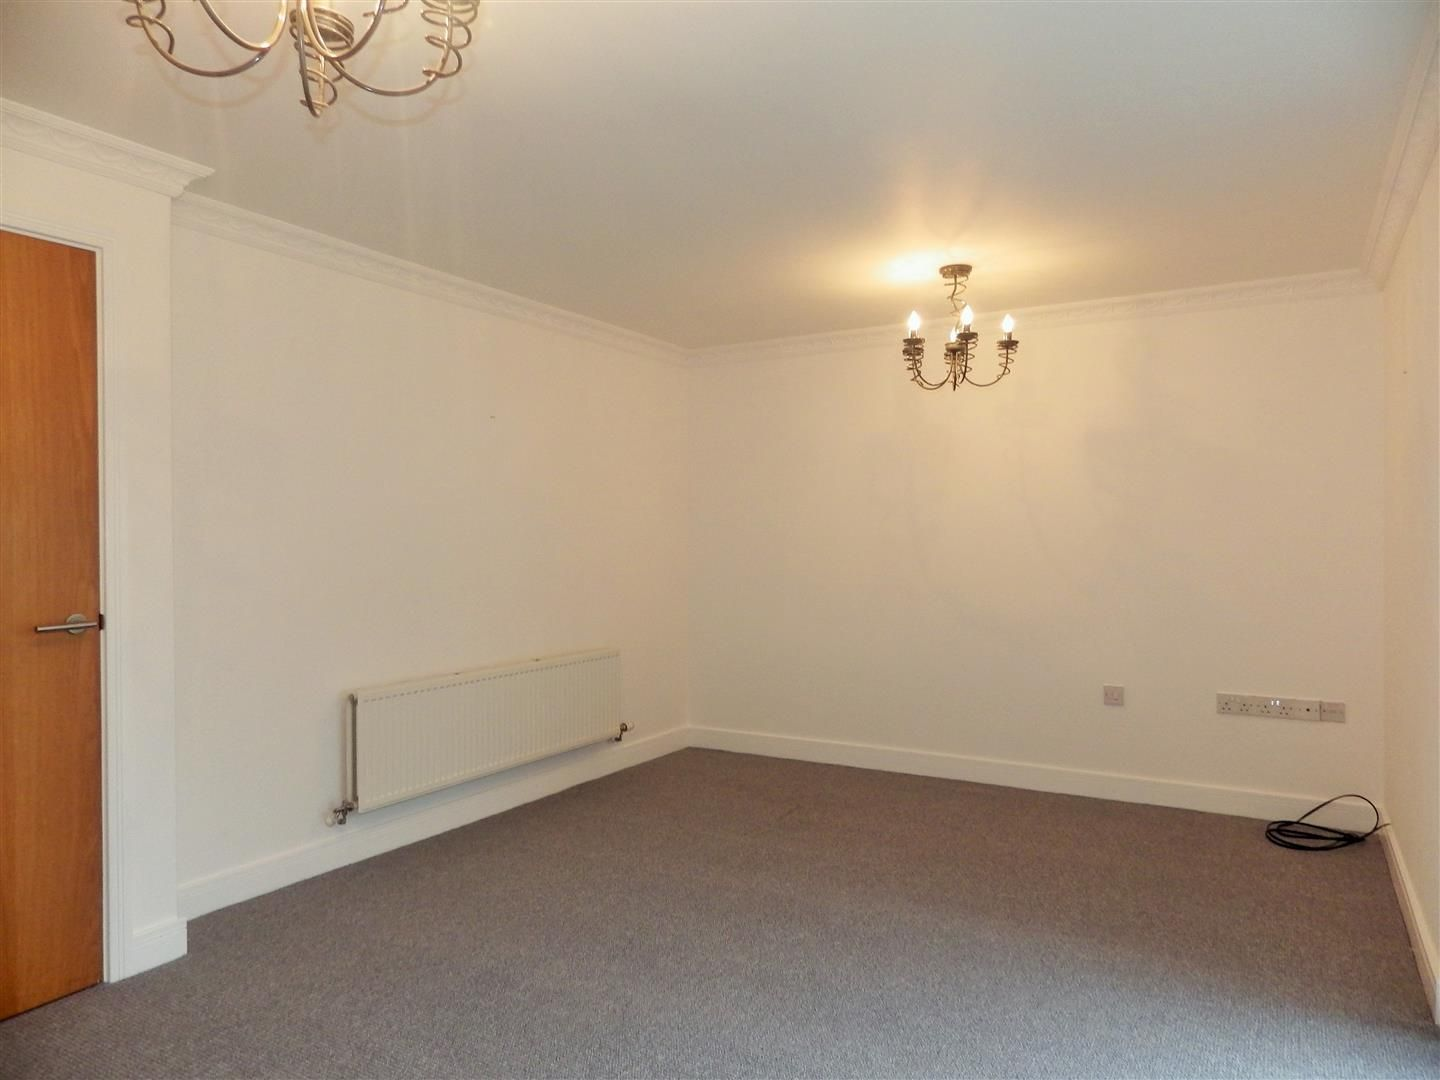 2 bed flat for sale  - Property Image 4